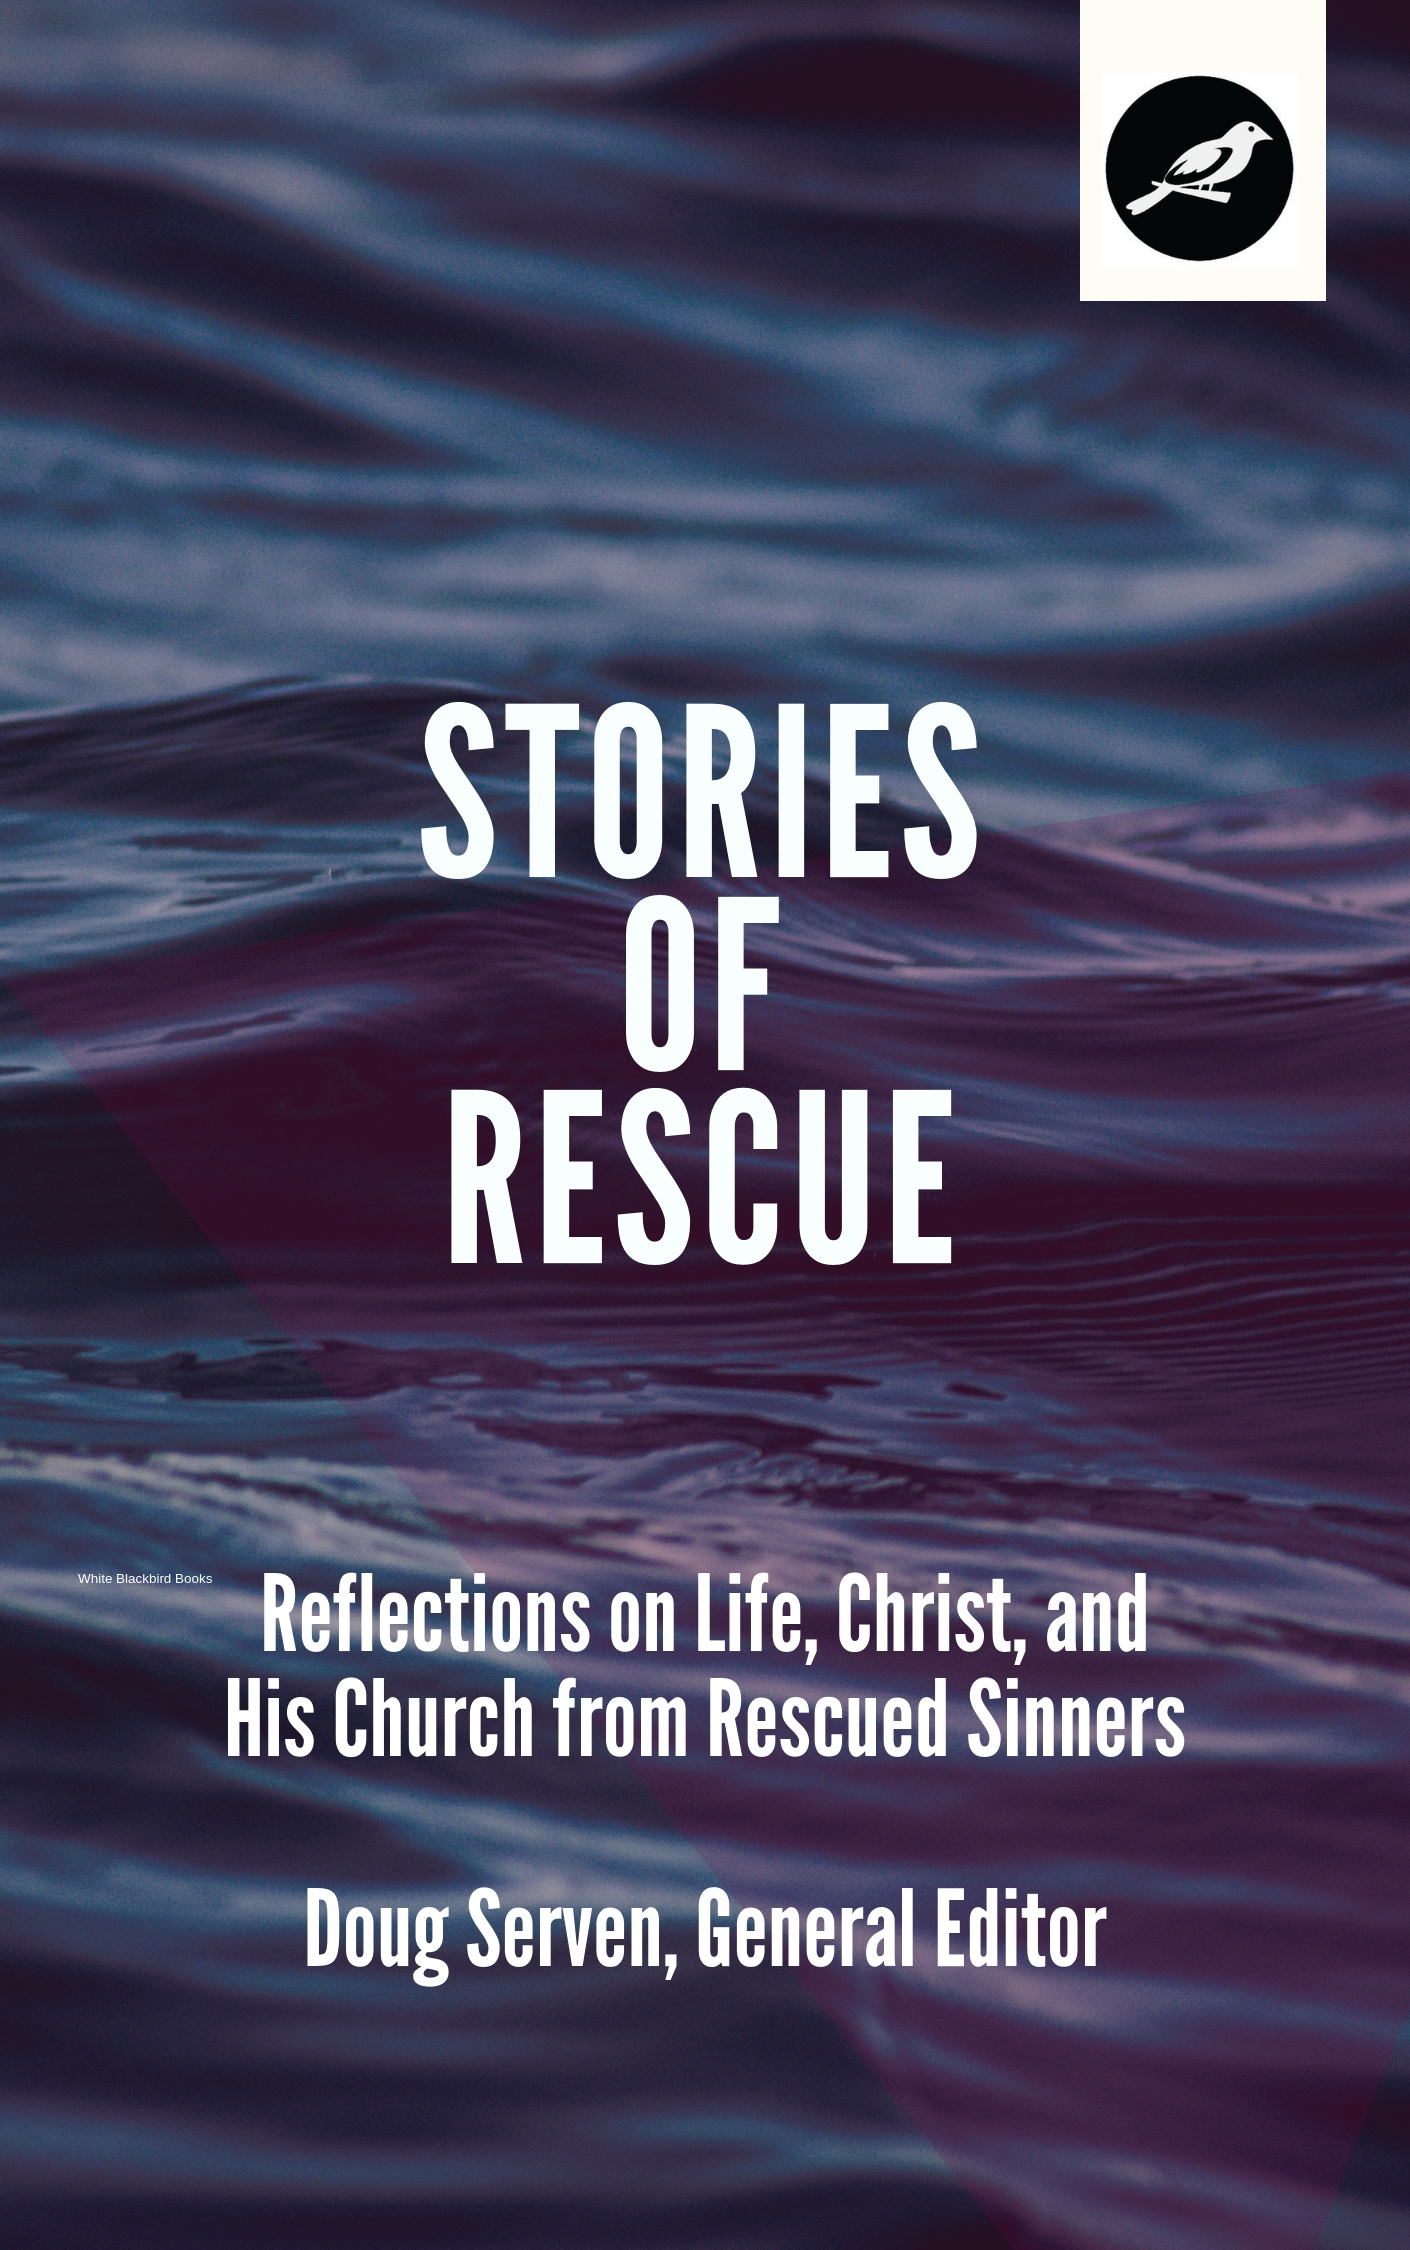 Stories of Rescue copy.jpg